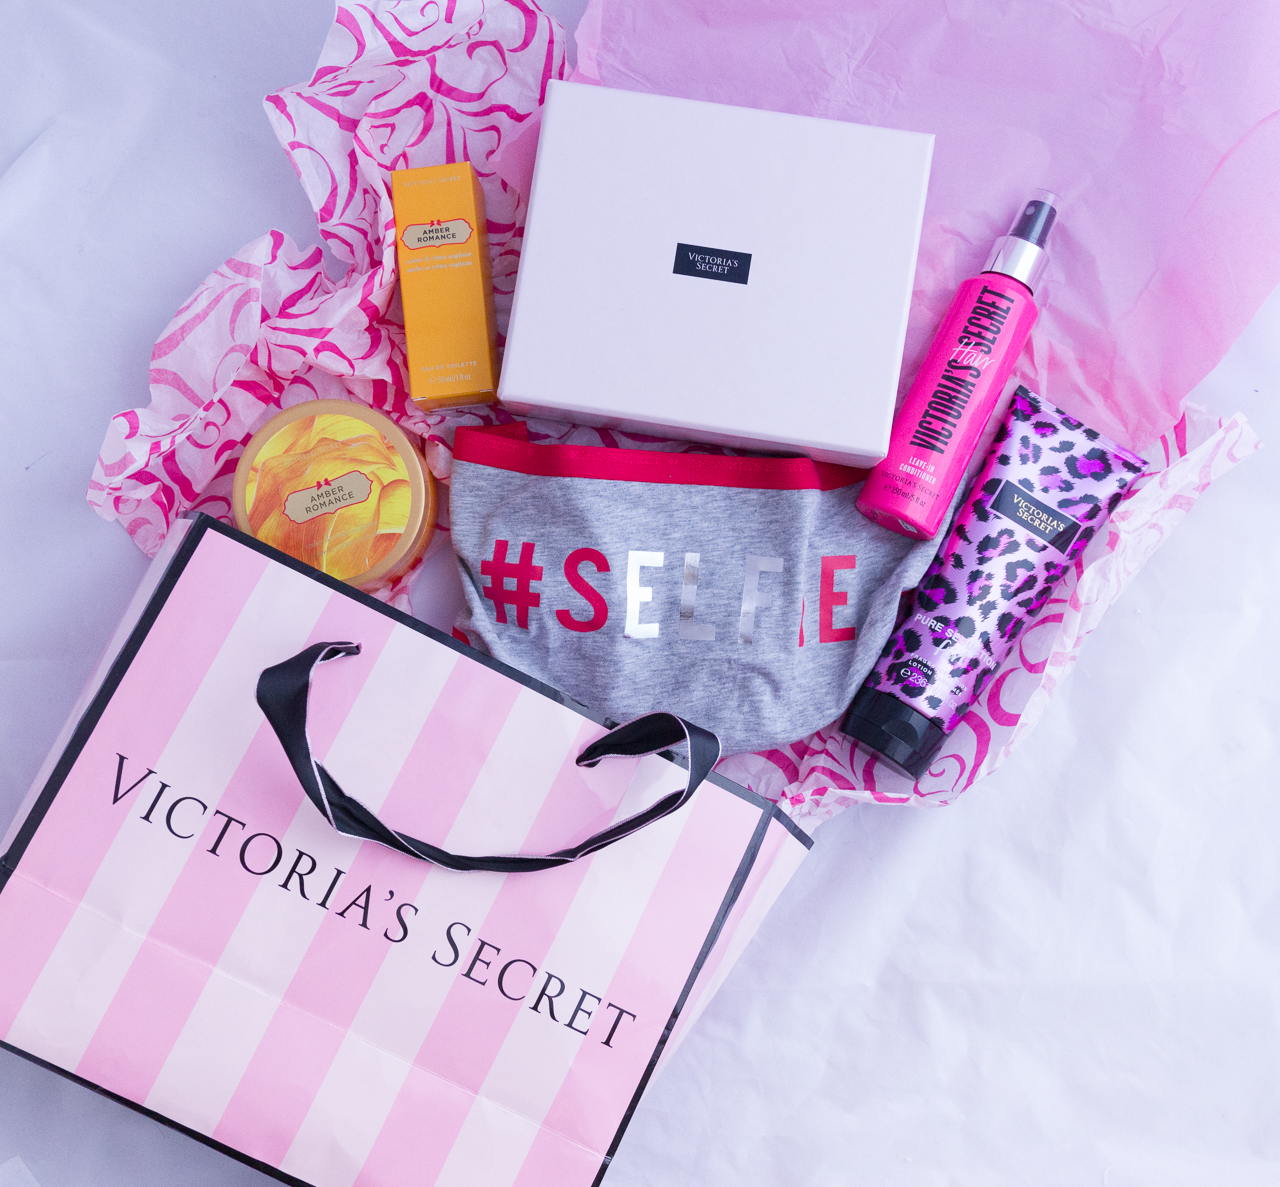 haul amsterdam blog blogueuse fashion mode victoria secret topshop urban outfitters river island